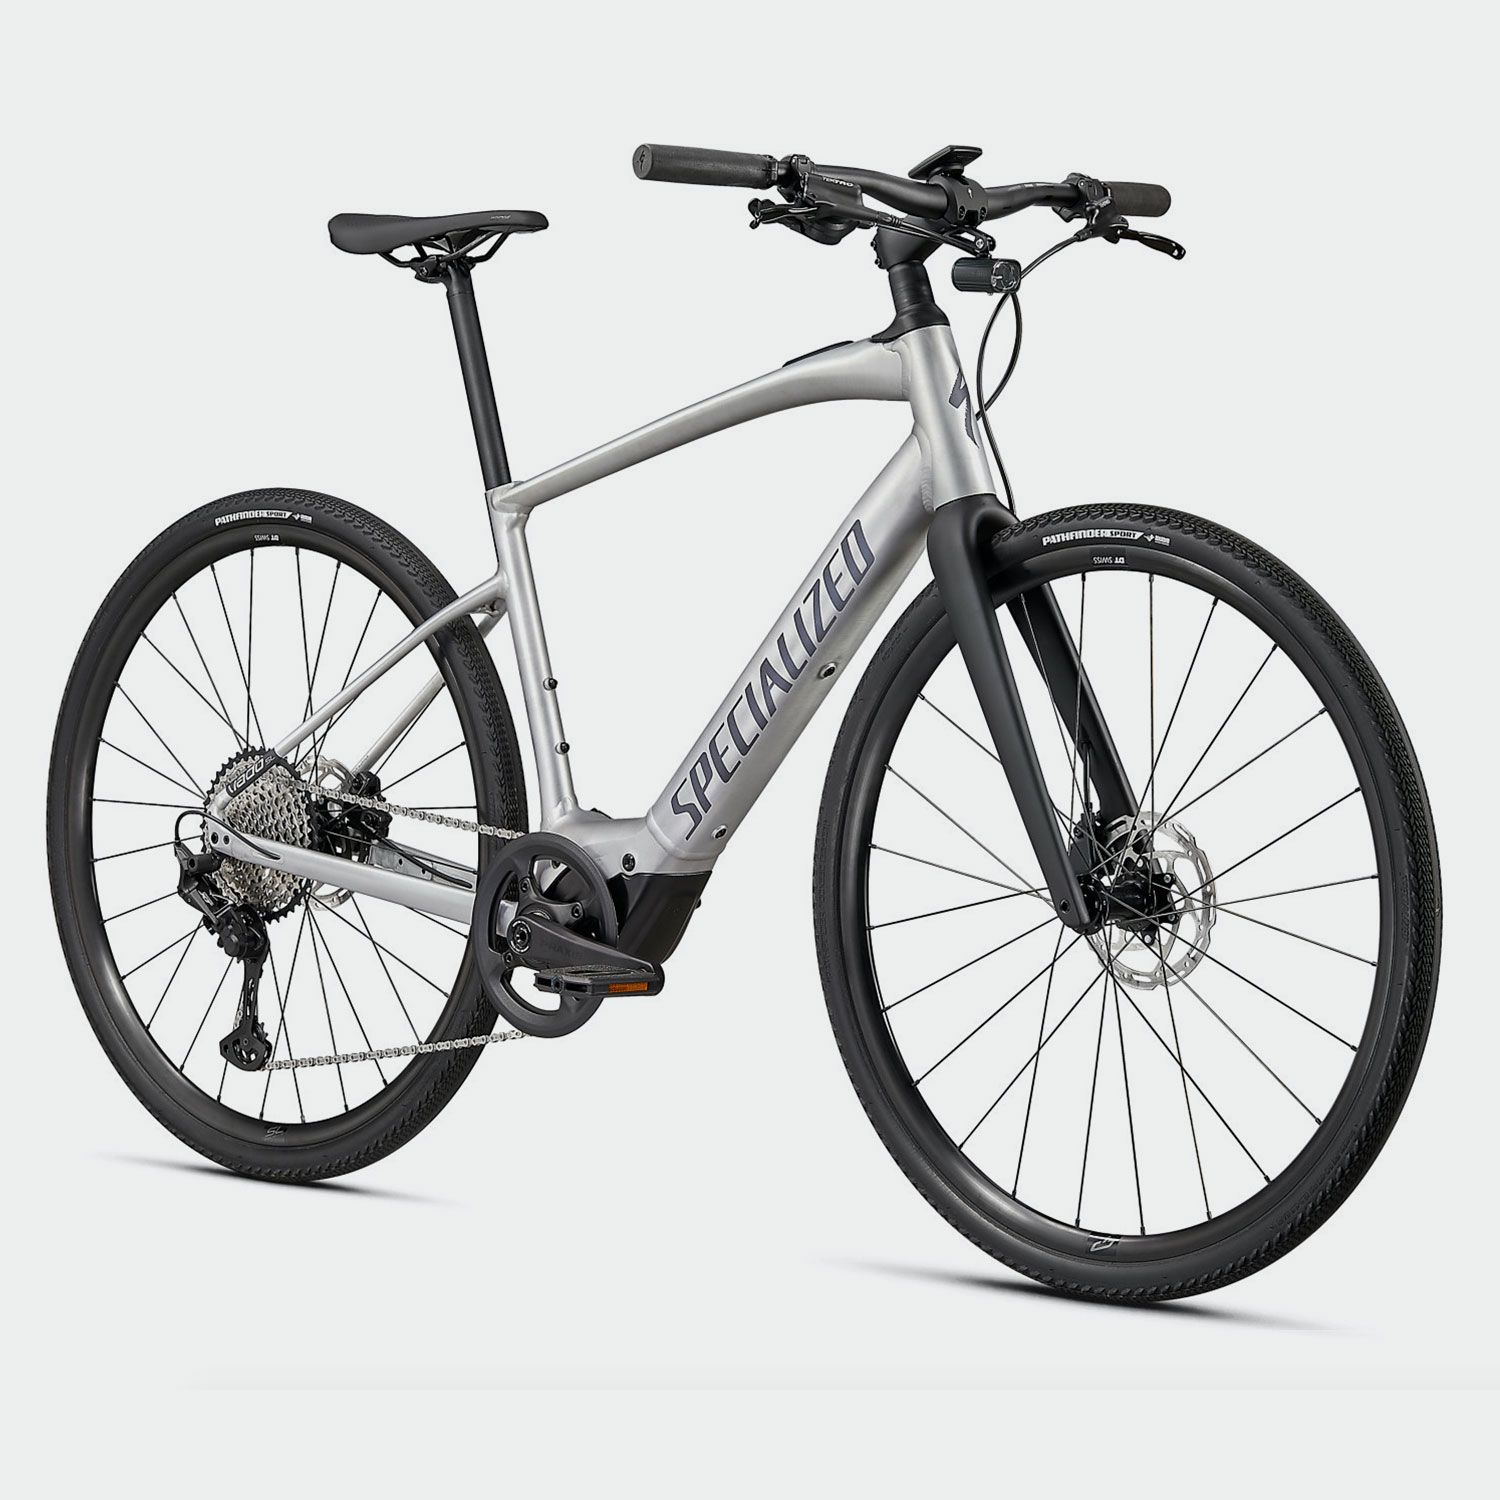 Specialized Turbo Vado Sl Lightweight Urban Bikes With A Brand New Motor And 130 Km Range In 2020 Urban Bike Bike Lightweight Bike